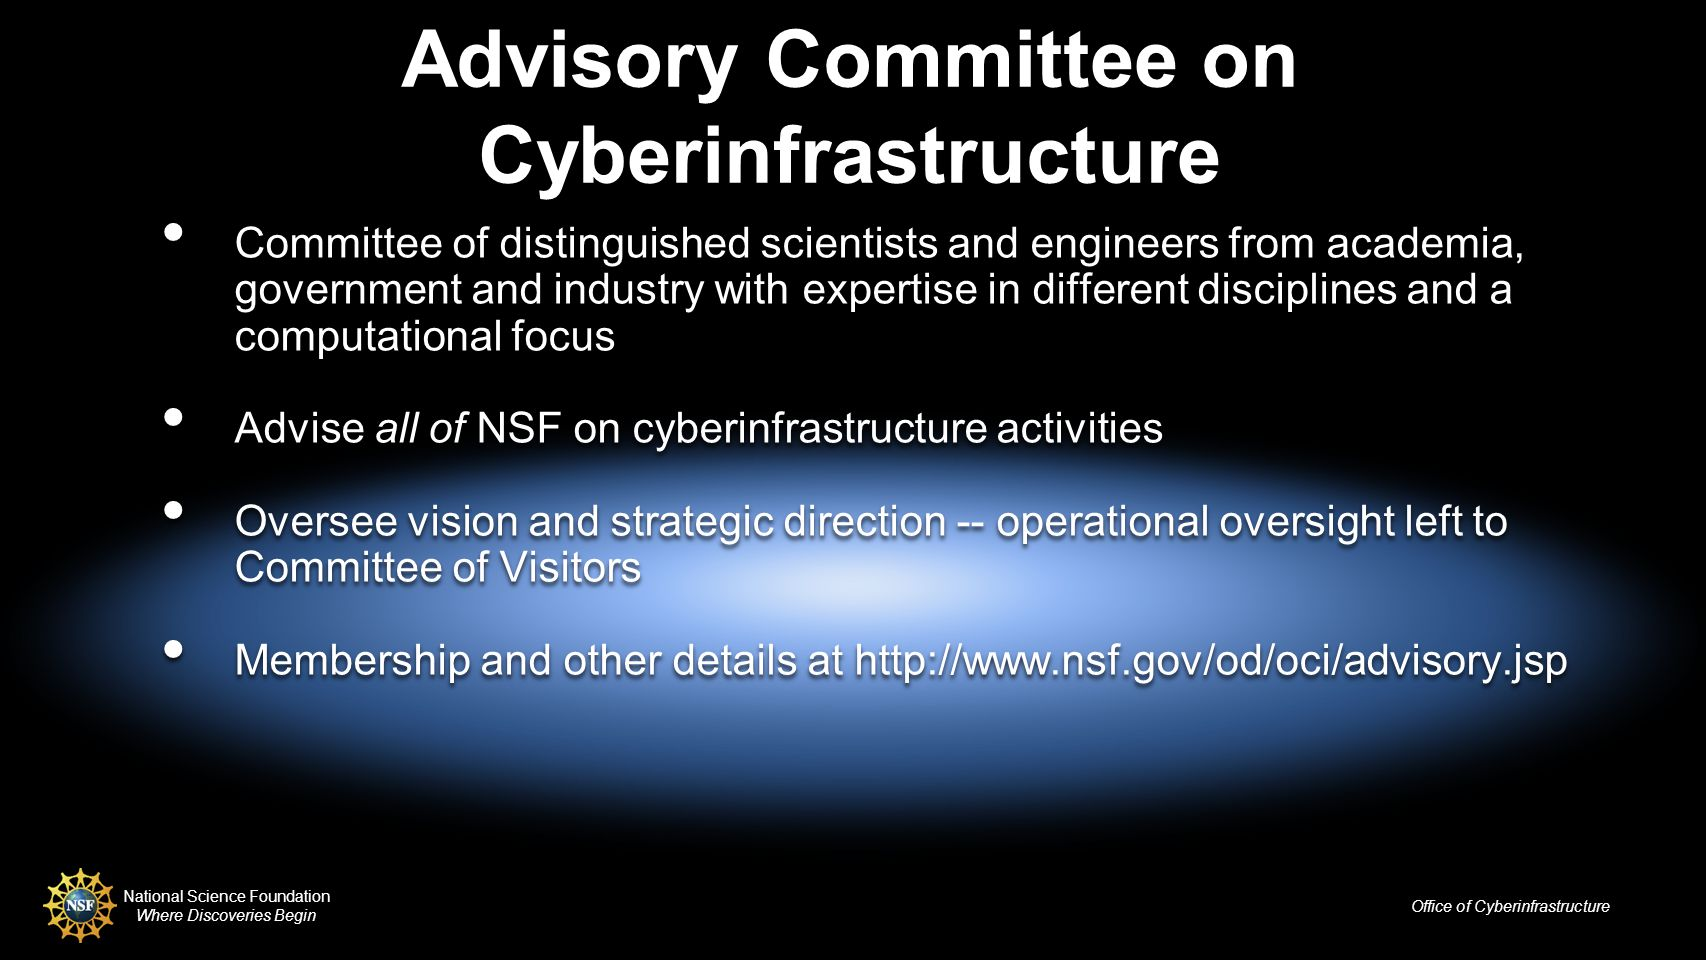 National Science Foundation Where Discoveries Begin Office of Cyberinfrastructure Drivers Need to educate and train the current and next generation of scientists and engineers in computational science, computational thinking and use of cyberinfrastructure and the social dynamics of virtual organizations and remote collaborative research and education CI provides interesting learning resources to be incorporated into the curriculum enabling more active and authentic pedagogy Deluge of science data to incorporate into education at all levels, and a possible deluge of learning data to incorporate into teaching, administration and learning science Need for informal education, professional development and pubic awareness Emerging computational science areas Emerging cyber-learning science, pedagogy and curriculum resources